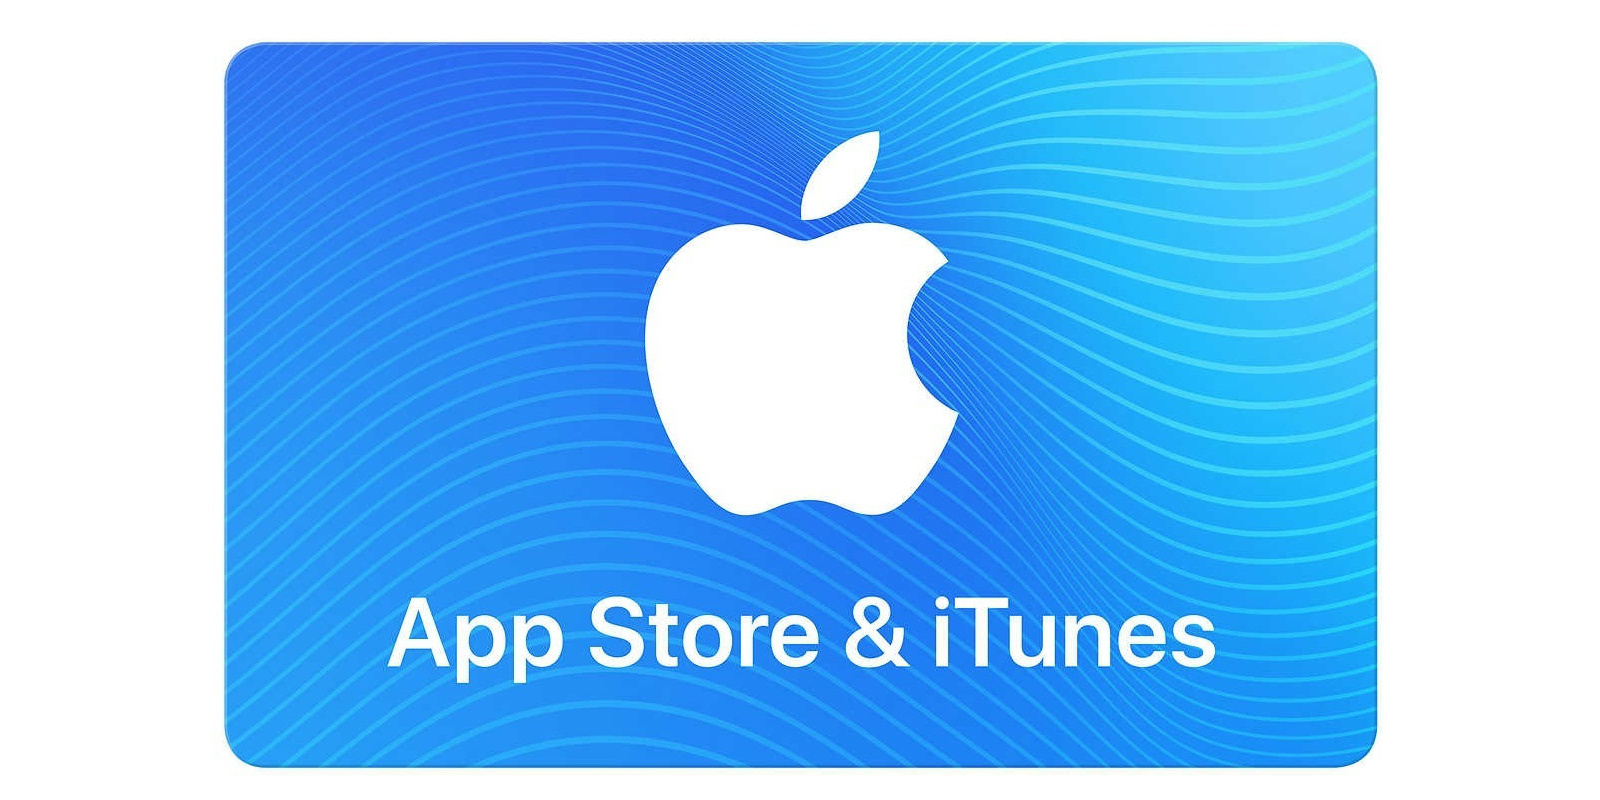 Target offers BOGO 20% off iTunes gift cards with email delivery, more